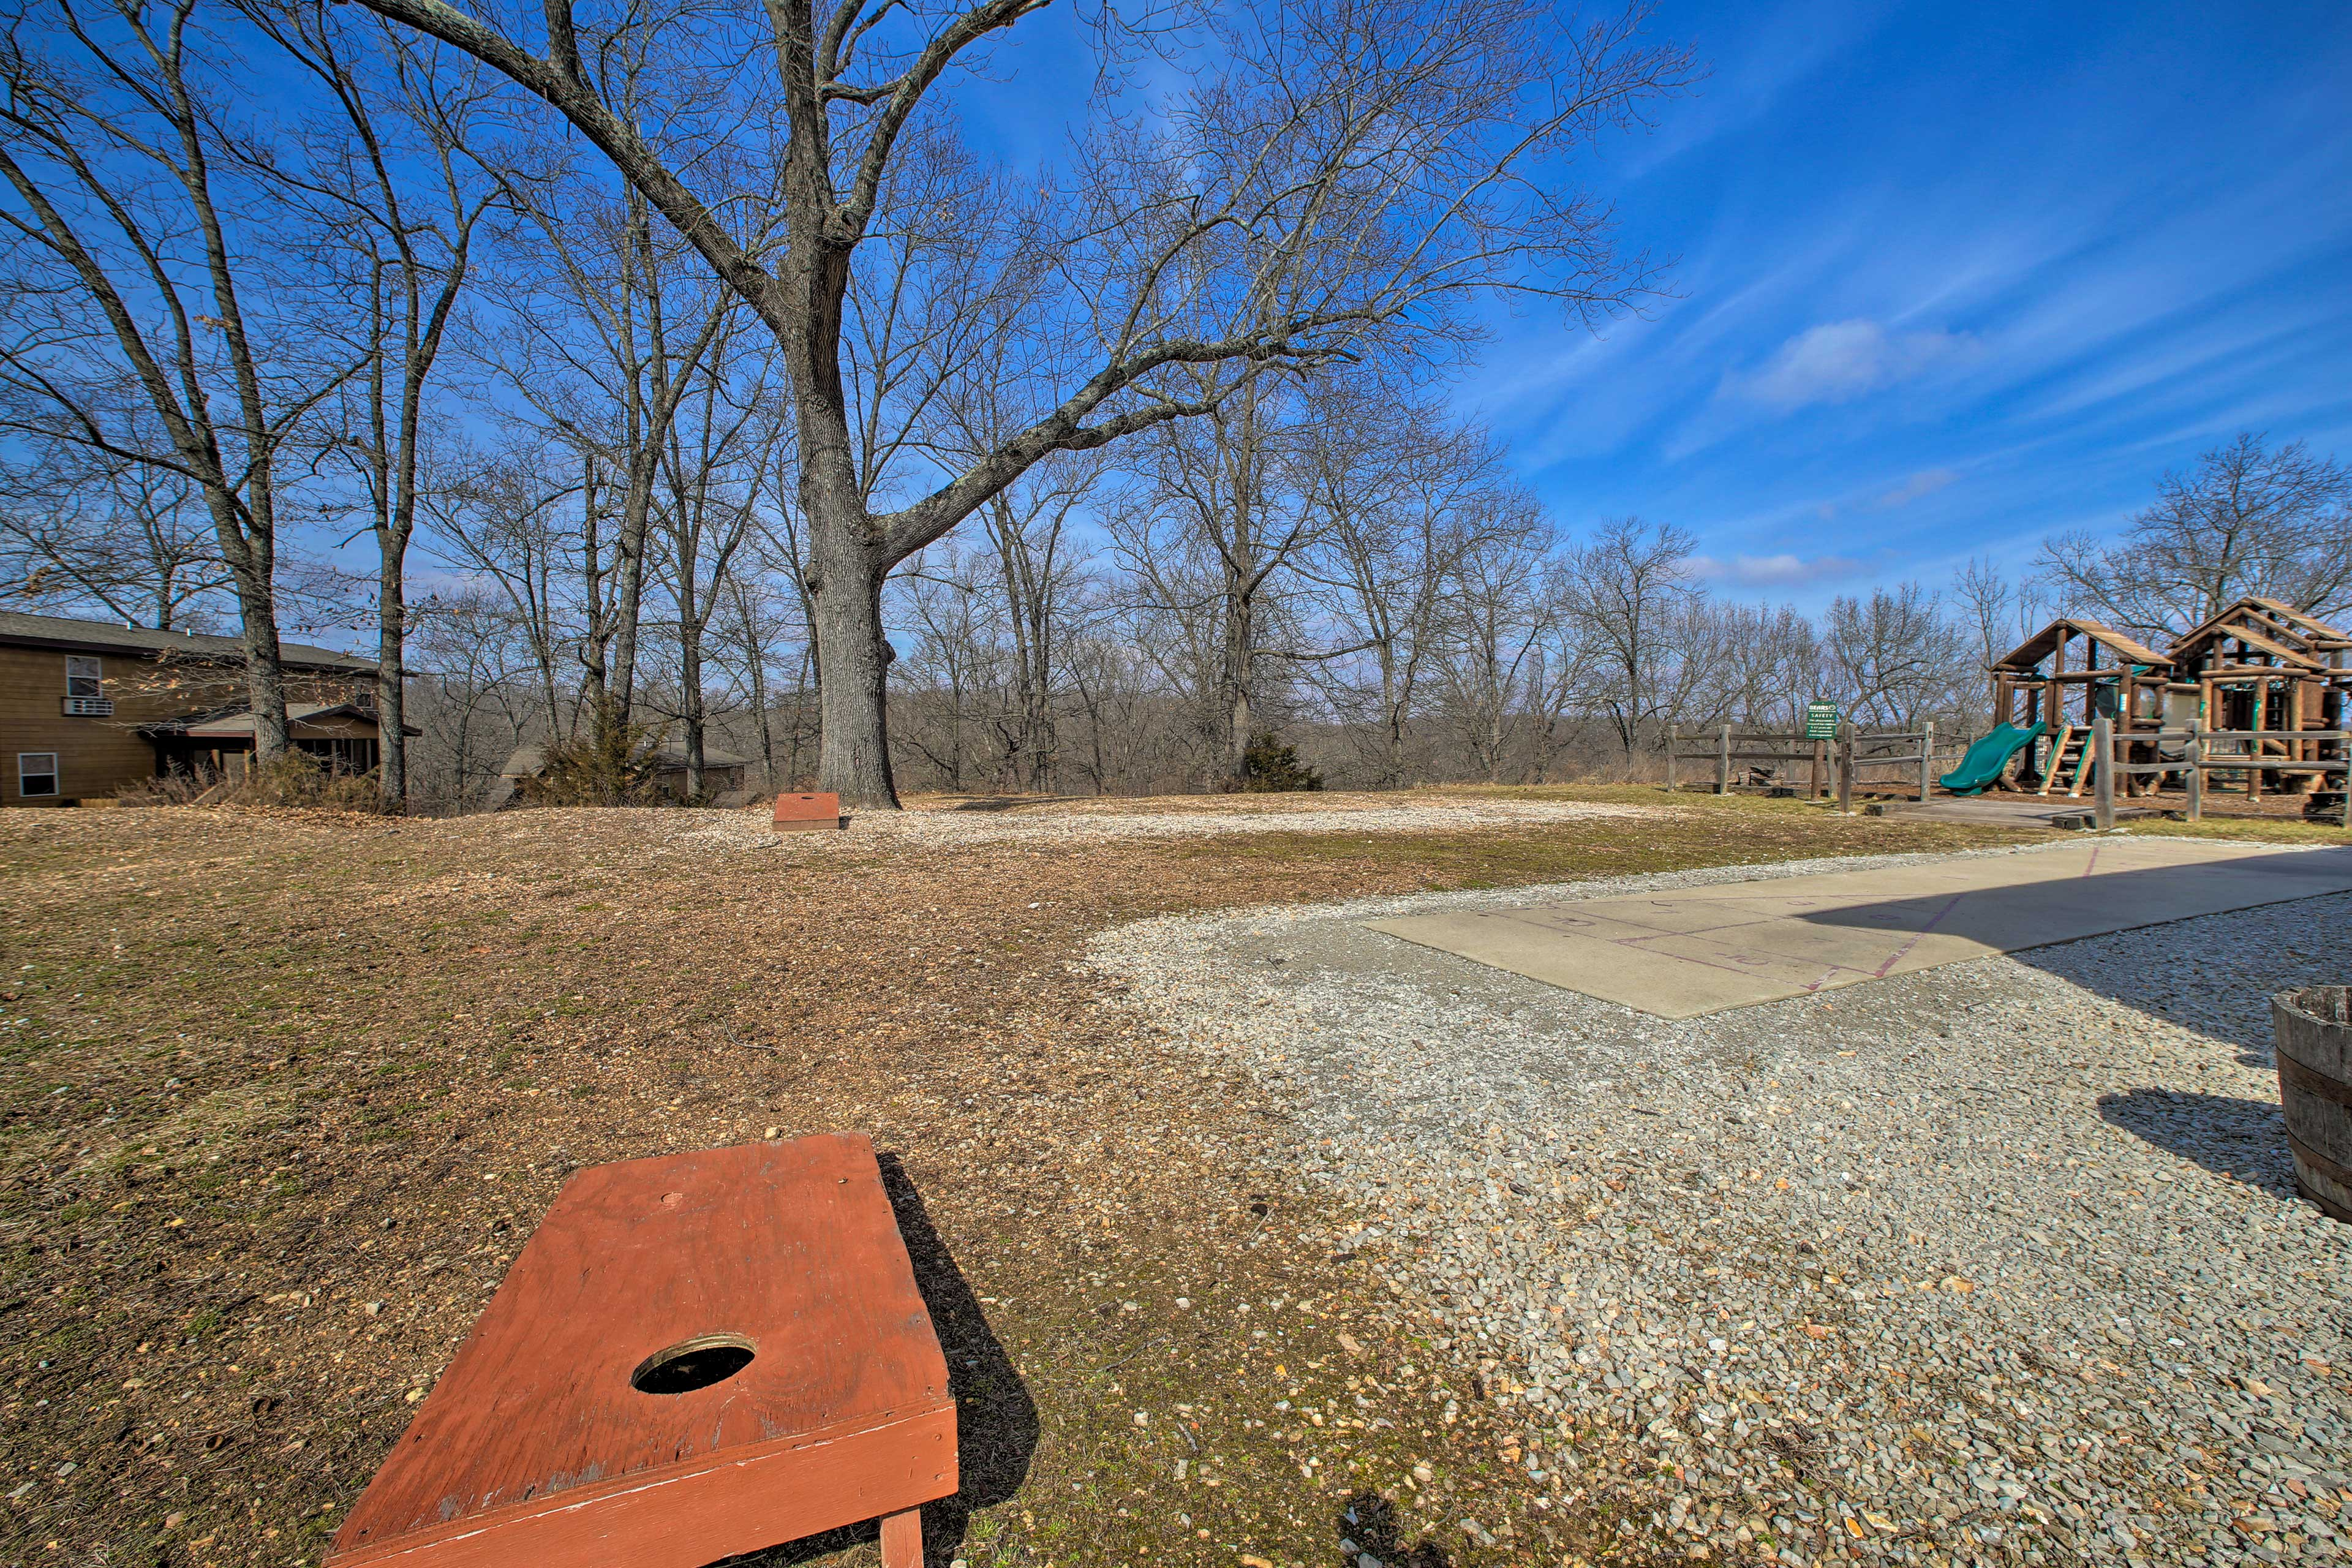 All of this is just 1 mile from Silver Dollar City & close to Table Rock Lake!